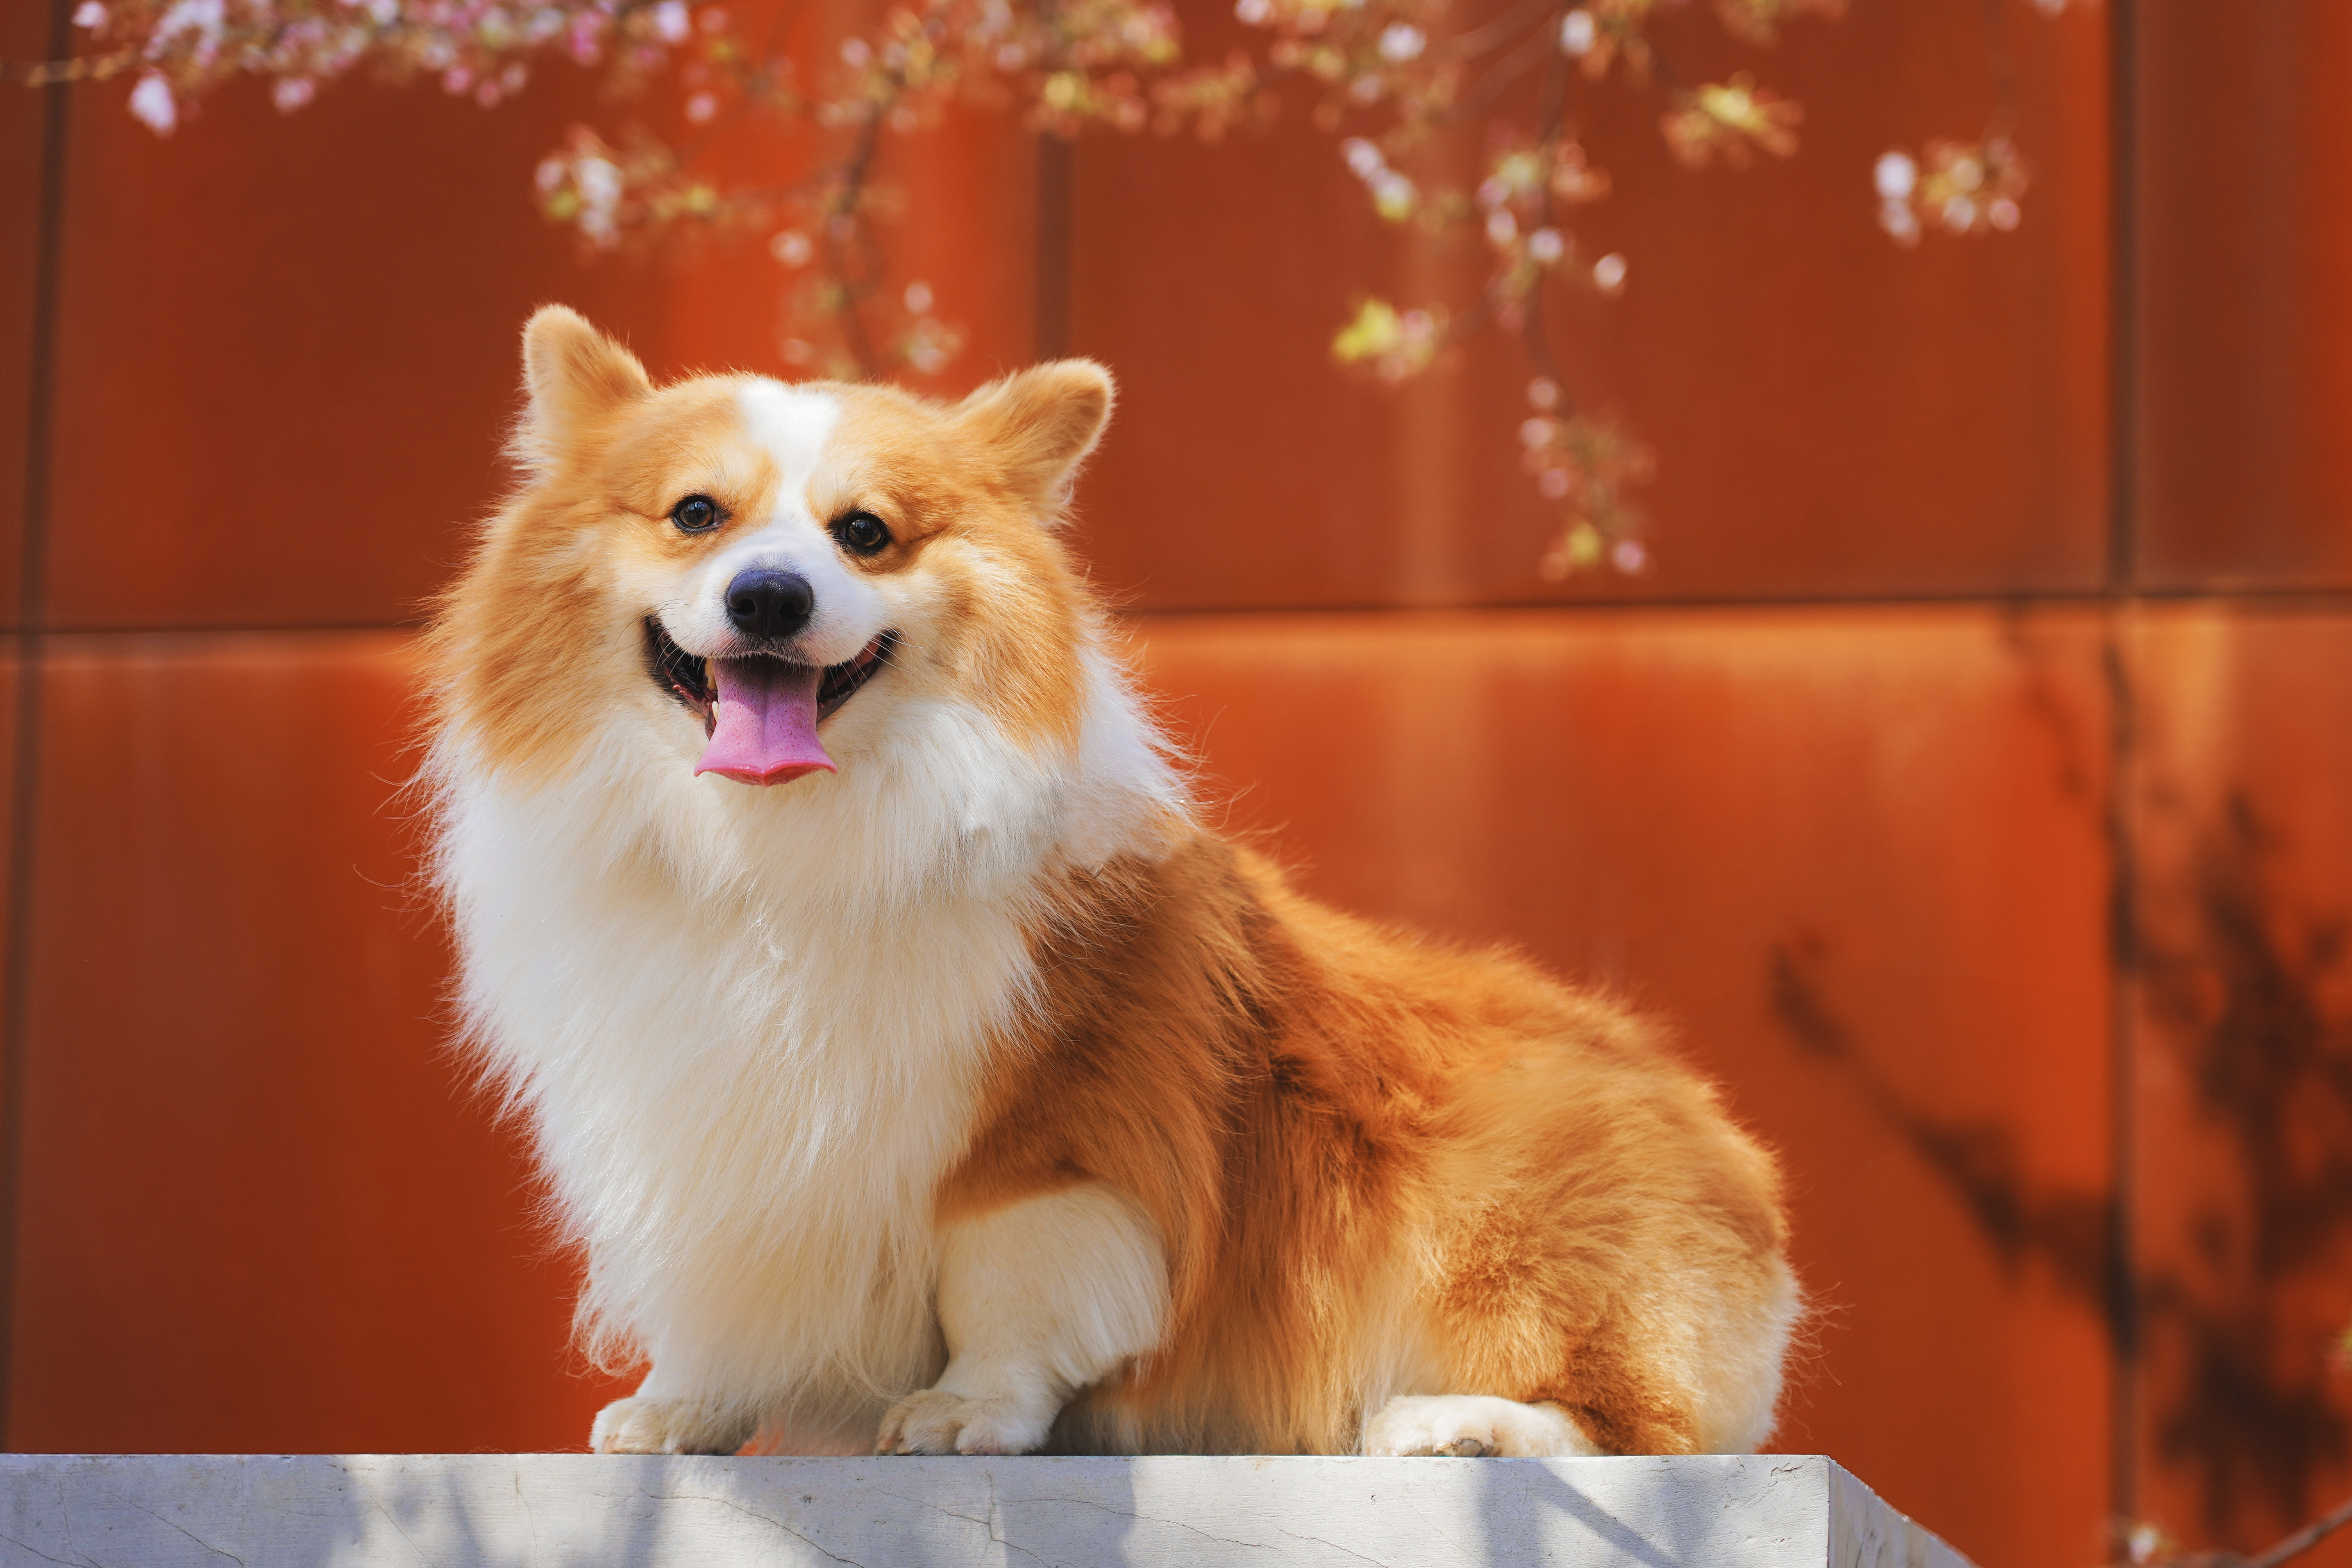 106088 download wallpaper Animals, Welsh Corgi Pembroke, Welsh Corgi, Dog, Protruding Tongue, Tongue Stuck Out, Redhead, Satisfied, Content screensavers and pictures for free